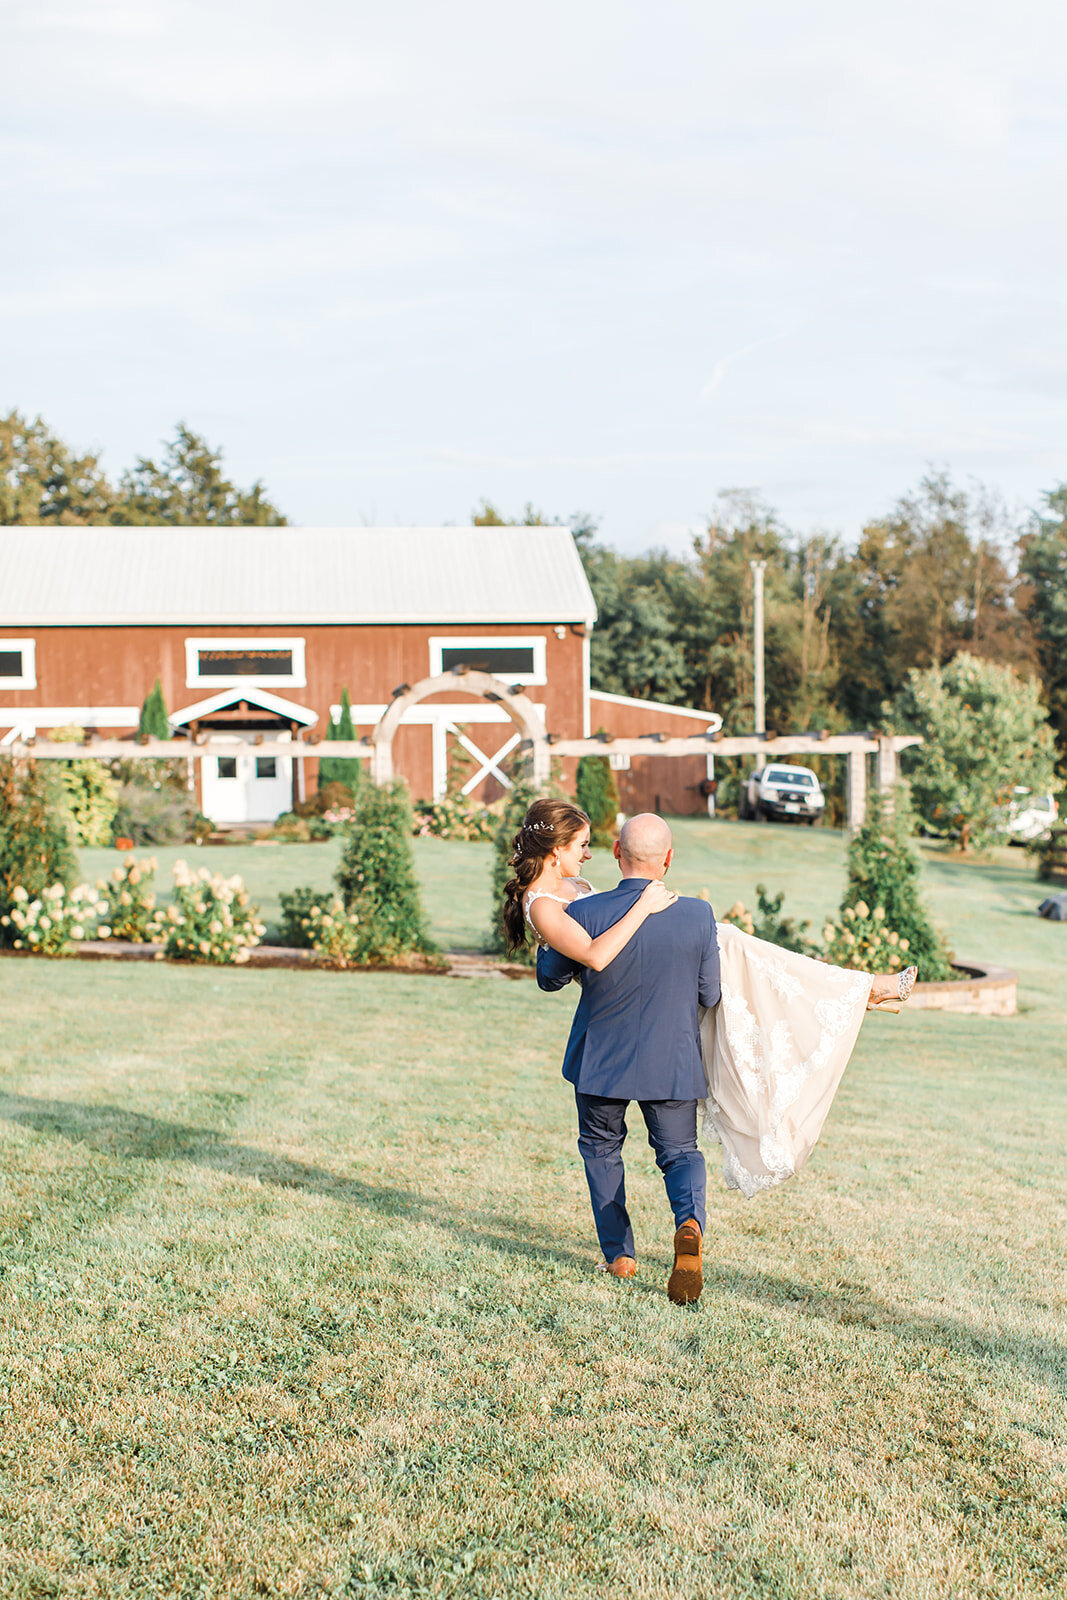 Virginia Wedding Photography Barn at Kline's Mill near Harrisonburg, Virginia 12